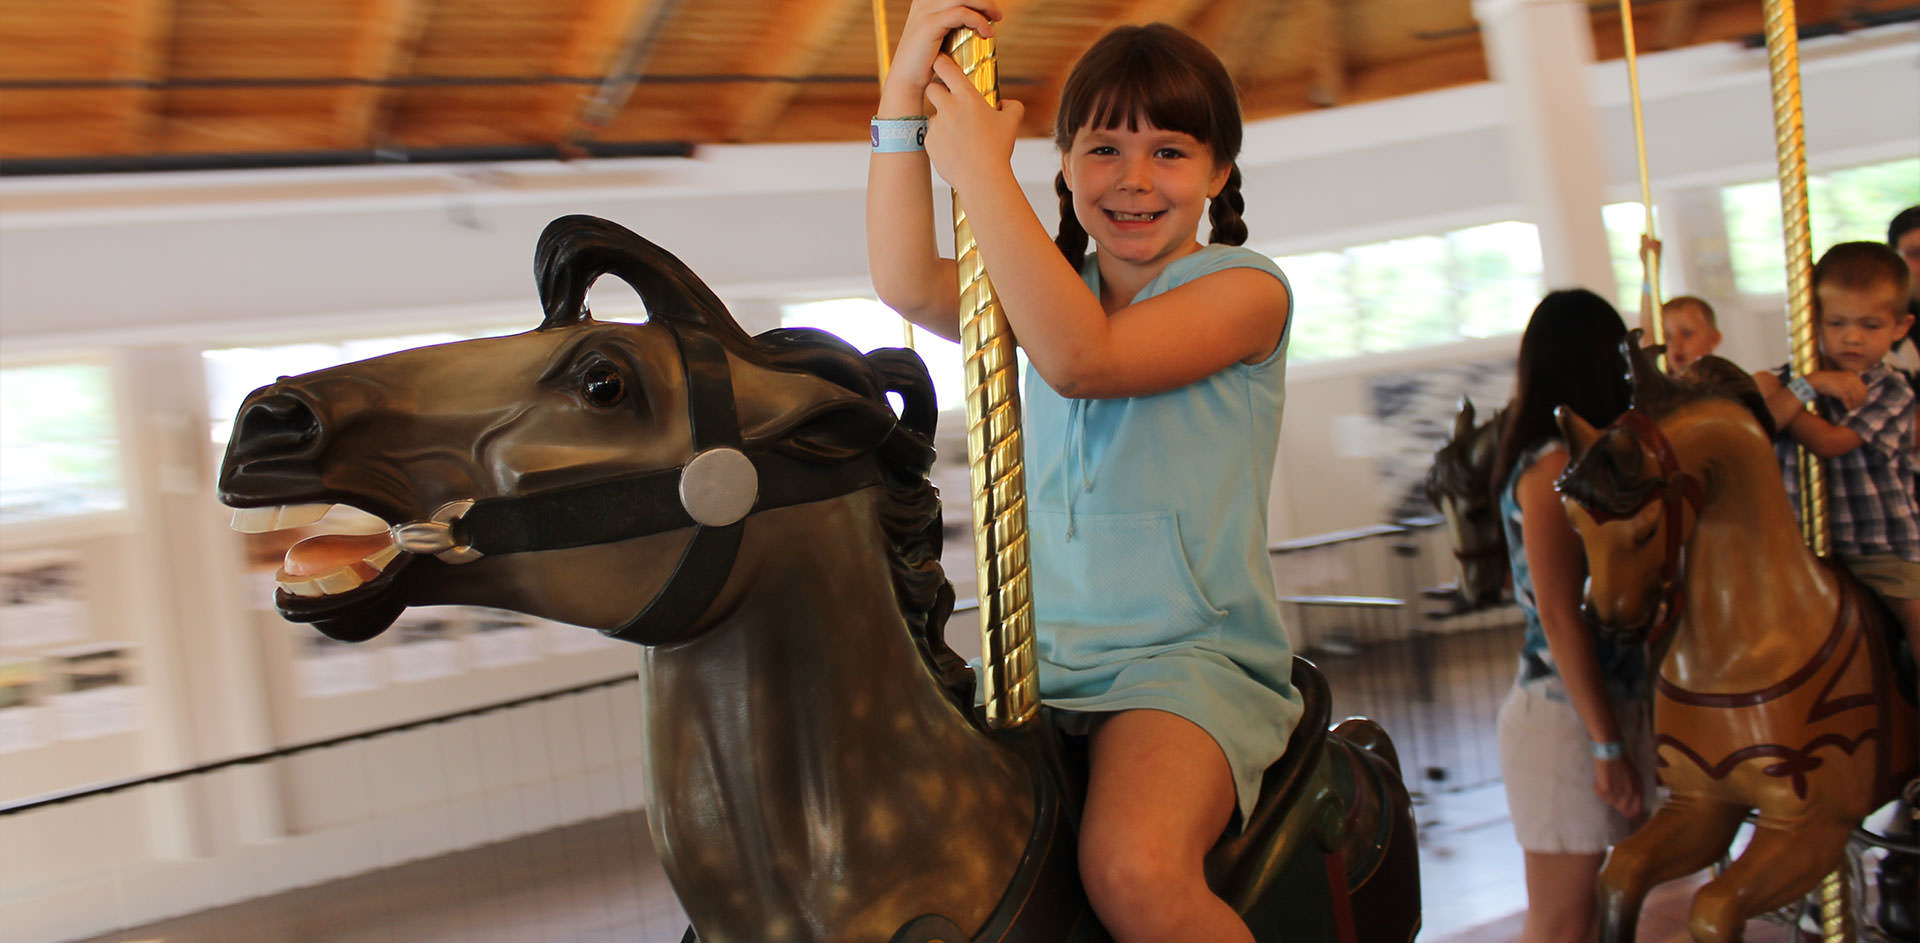 Girl on Carousel Ride